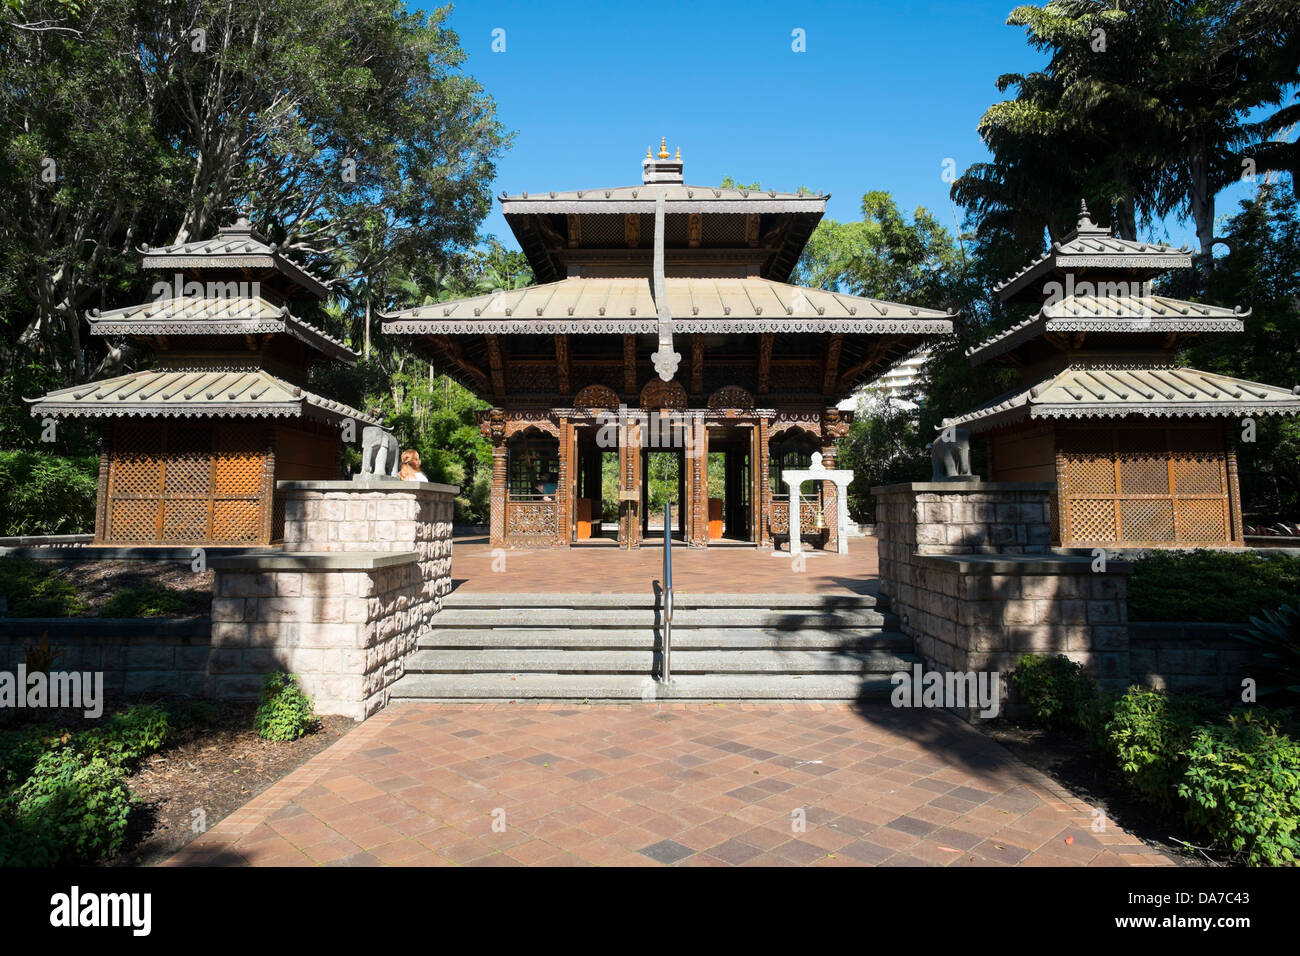 Nepalese Peace Pagoda in Southbank Brisbane Queensland Australia - Stock Image